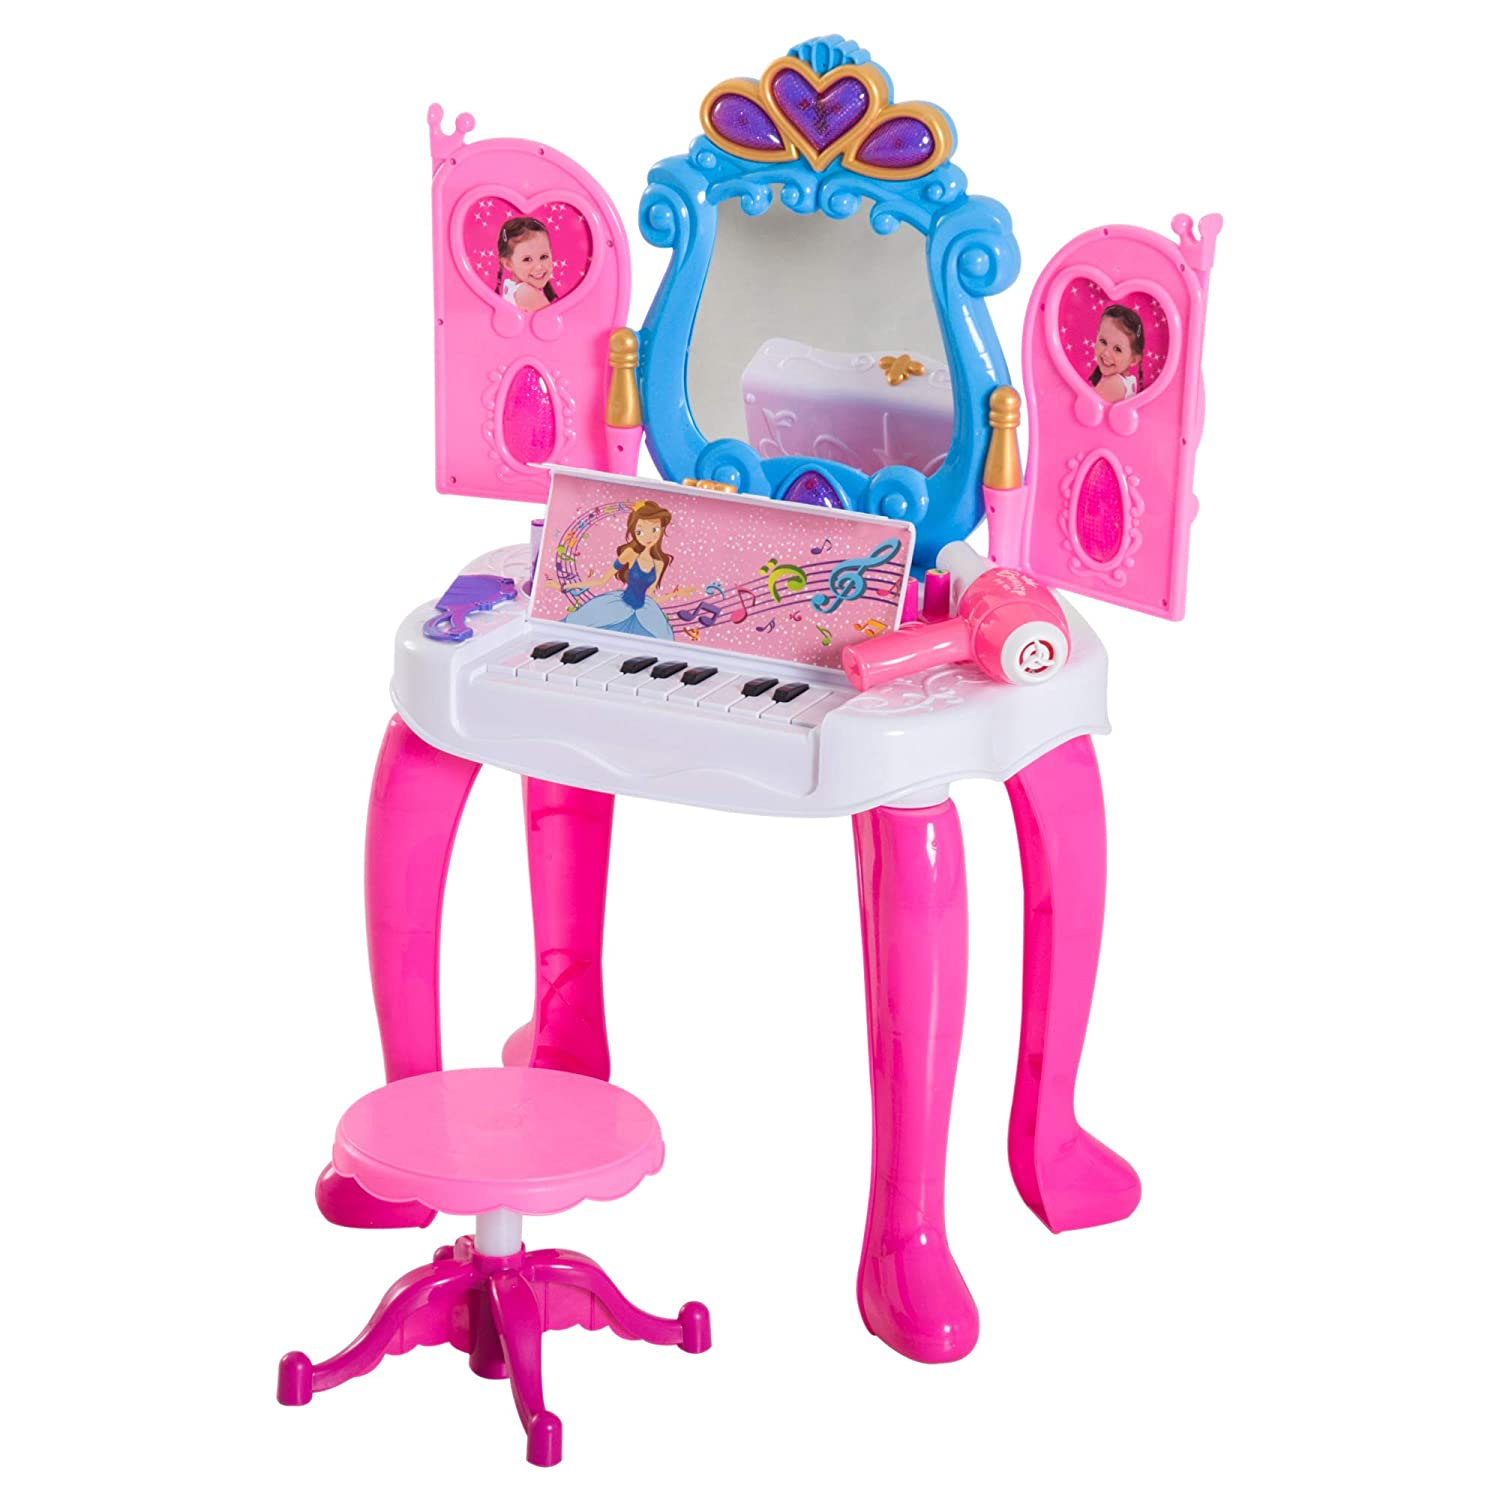 HOMCOM Kids Dressing Table Stool Set Makeup Vanity Mirror Piano Play Music with Remote Control Ideal for Girls Over 3 Years Sold by MHSTAR